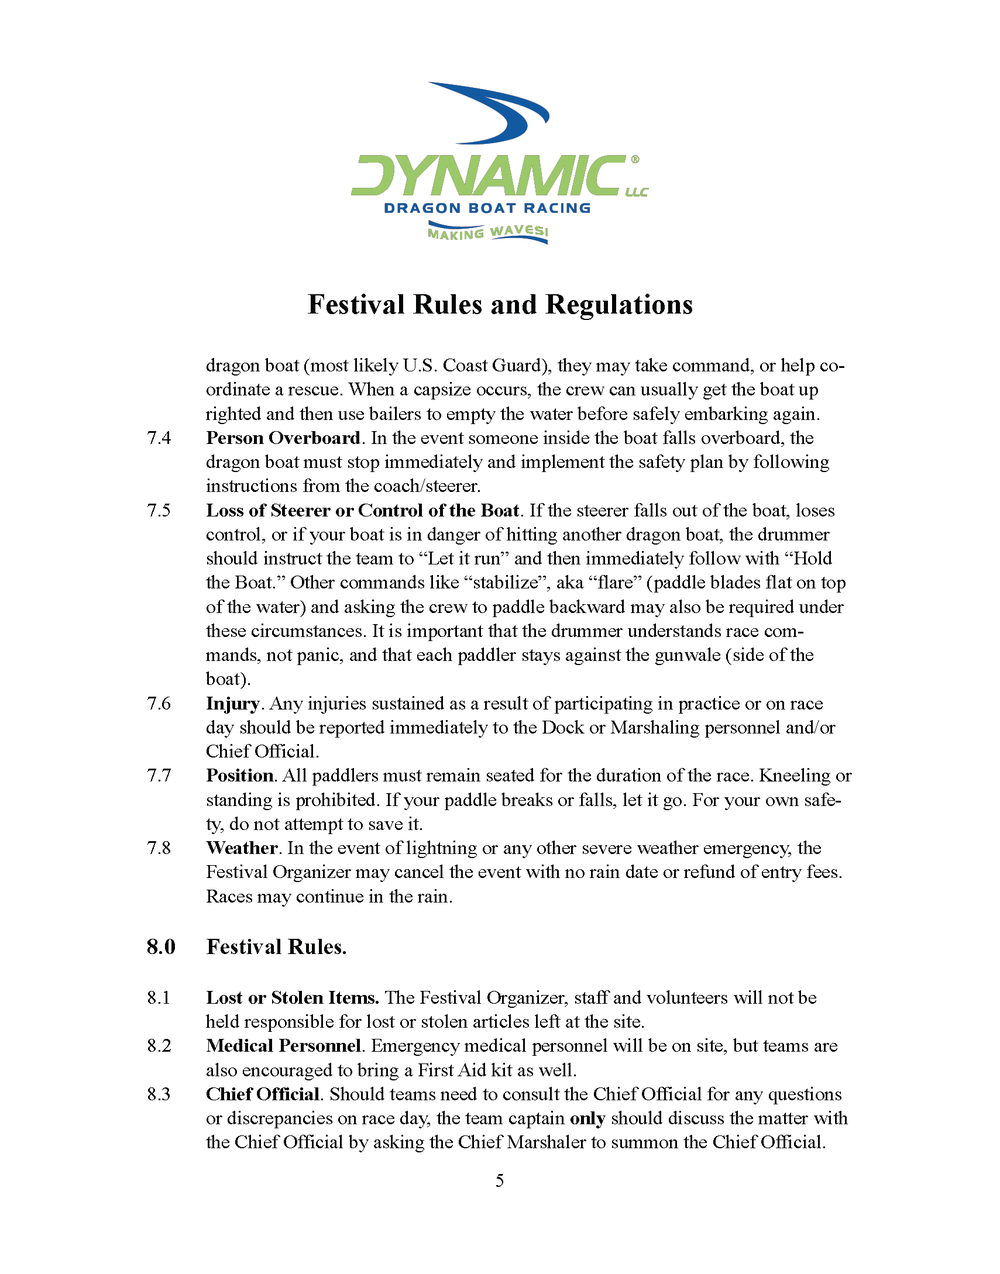 Dynamic_Festival_RulesRegulations_2019_Page_05.png